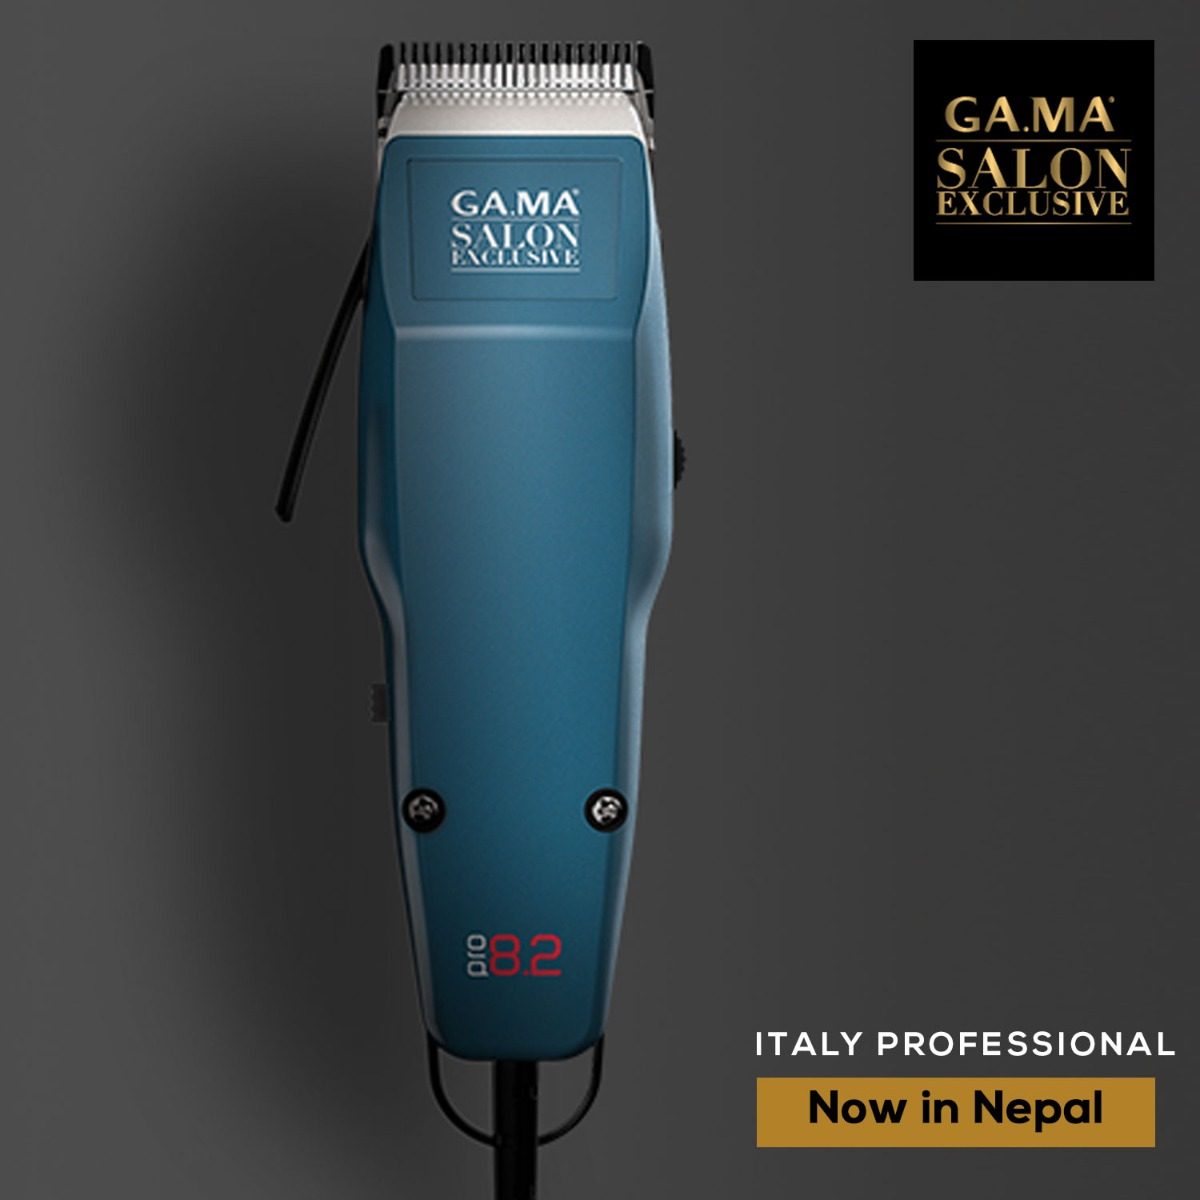 GA.MA SM1303 Professional Hair Clipper Pro 8.2 Alloy EU